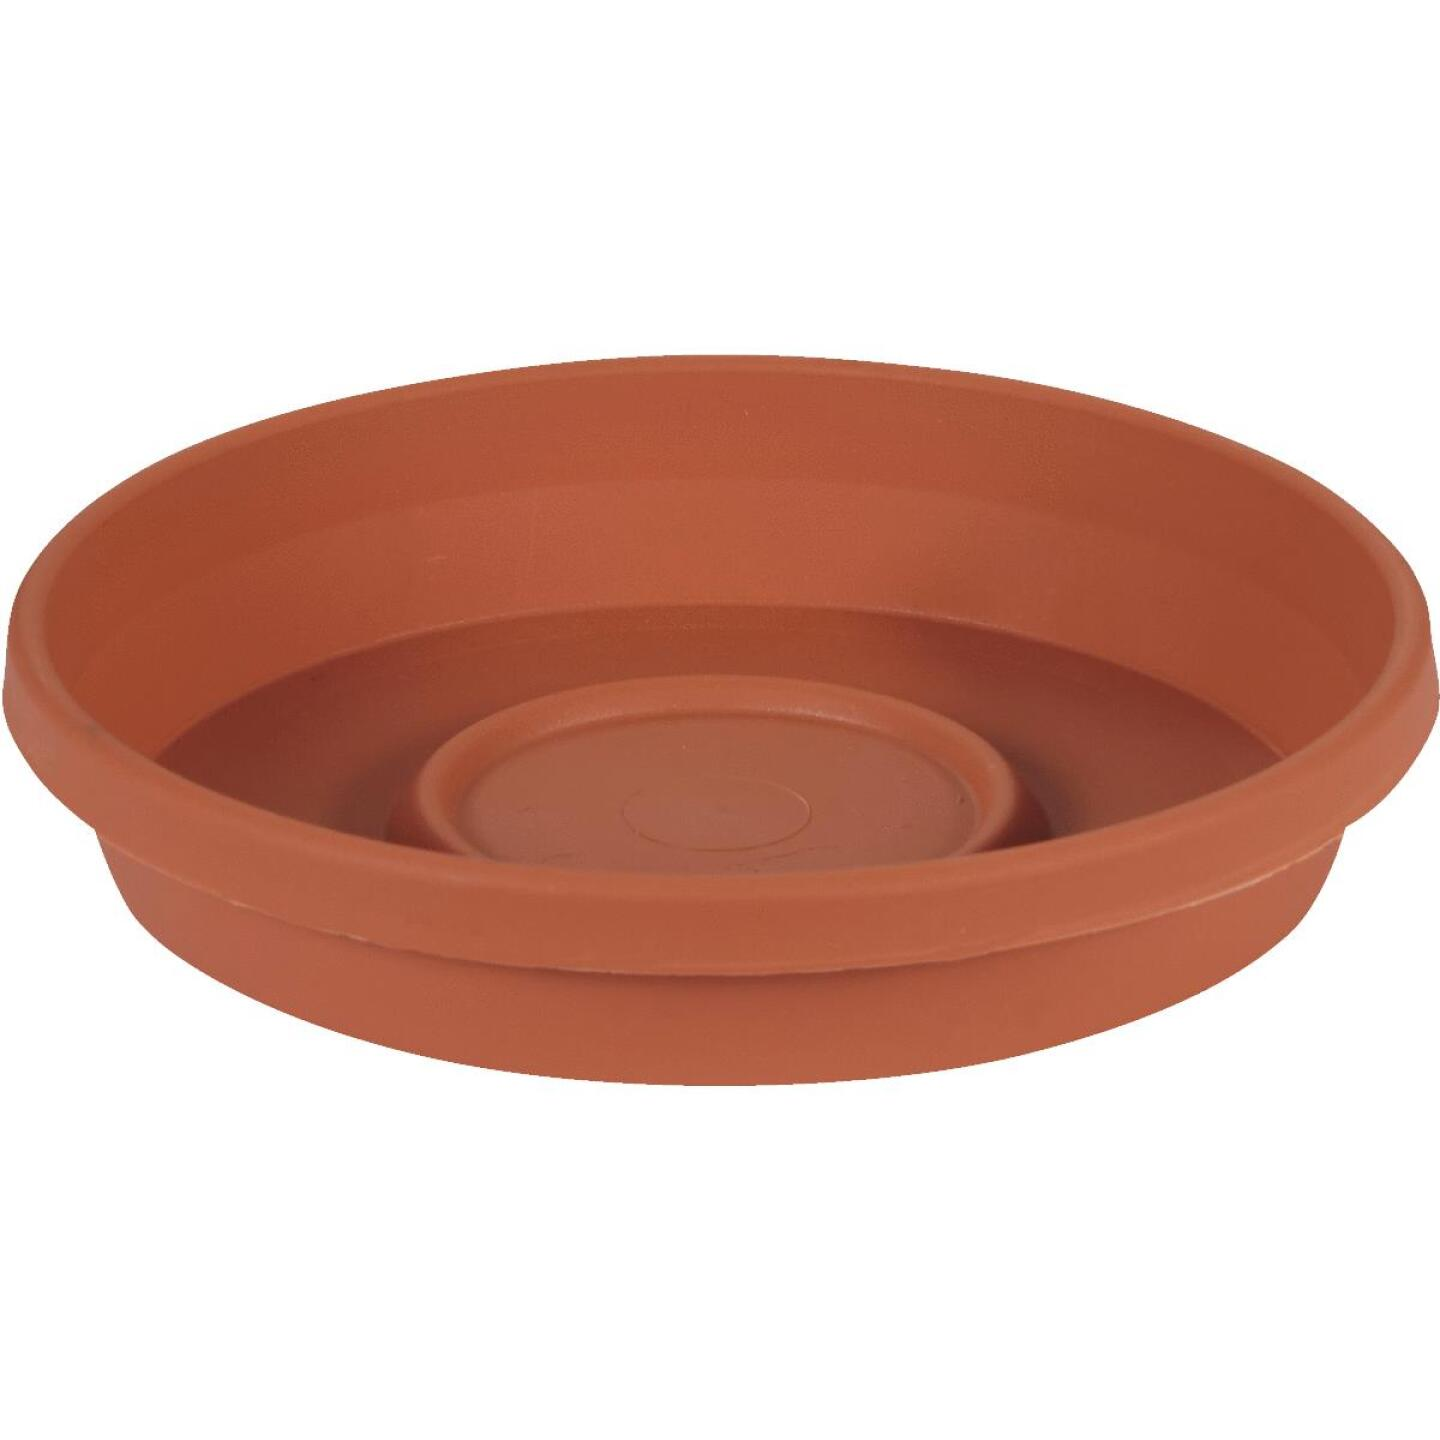 Bloem 6 In. Terracotta Poly Classic Flower Pot Saucer Image 1